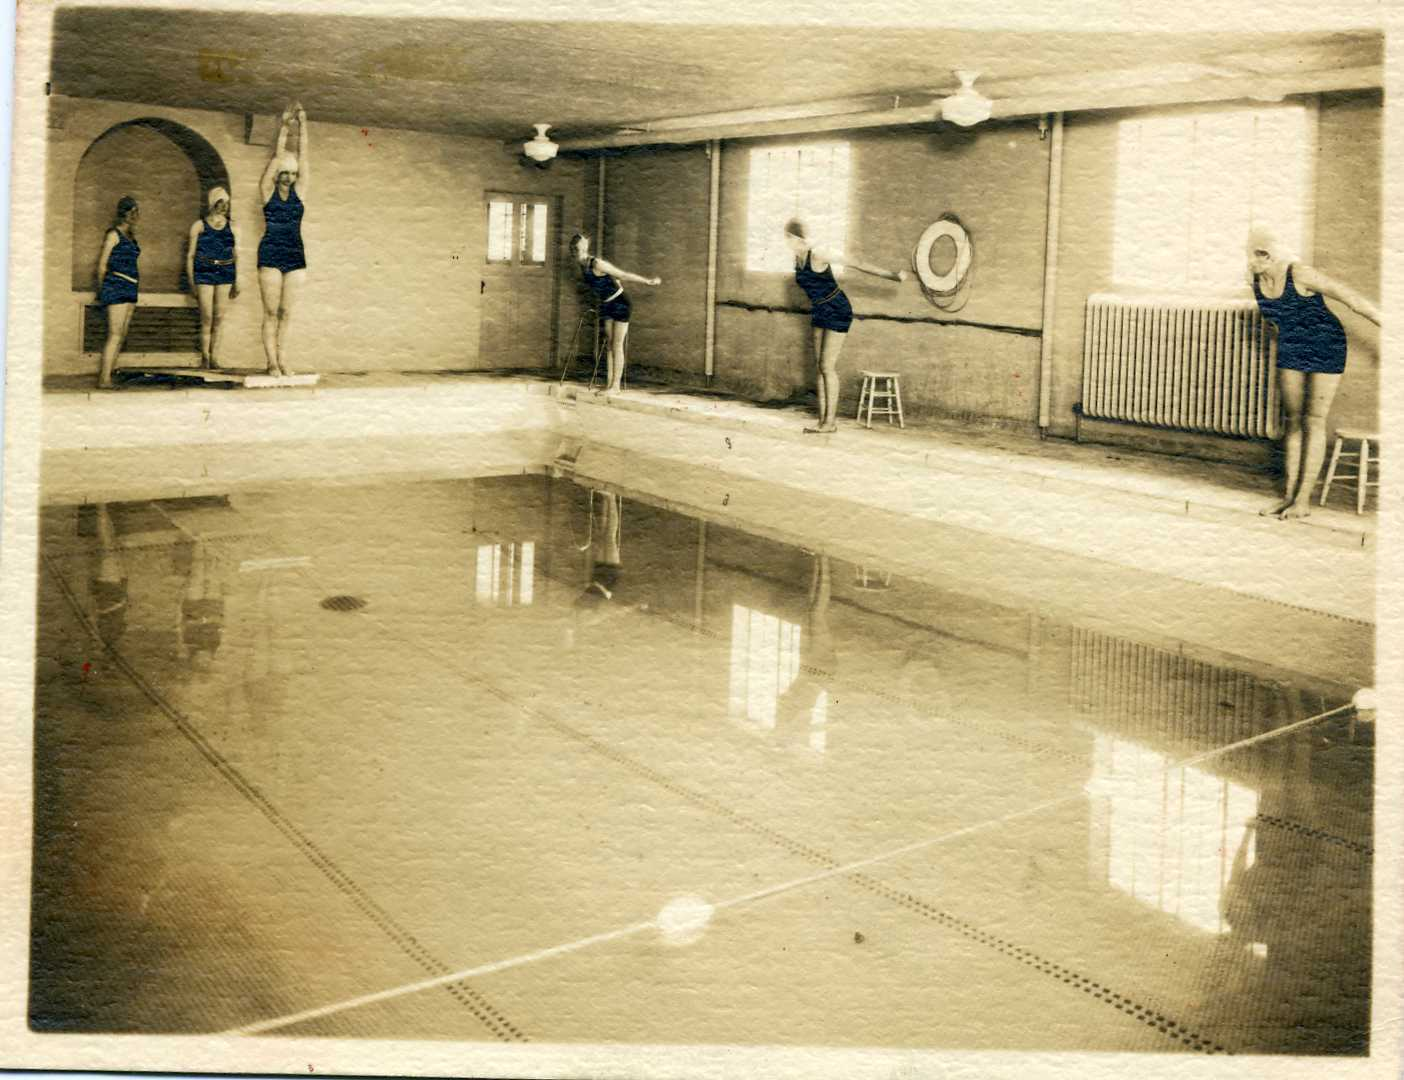 Swimming pool in the 1920s